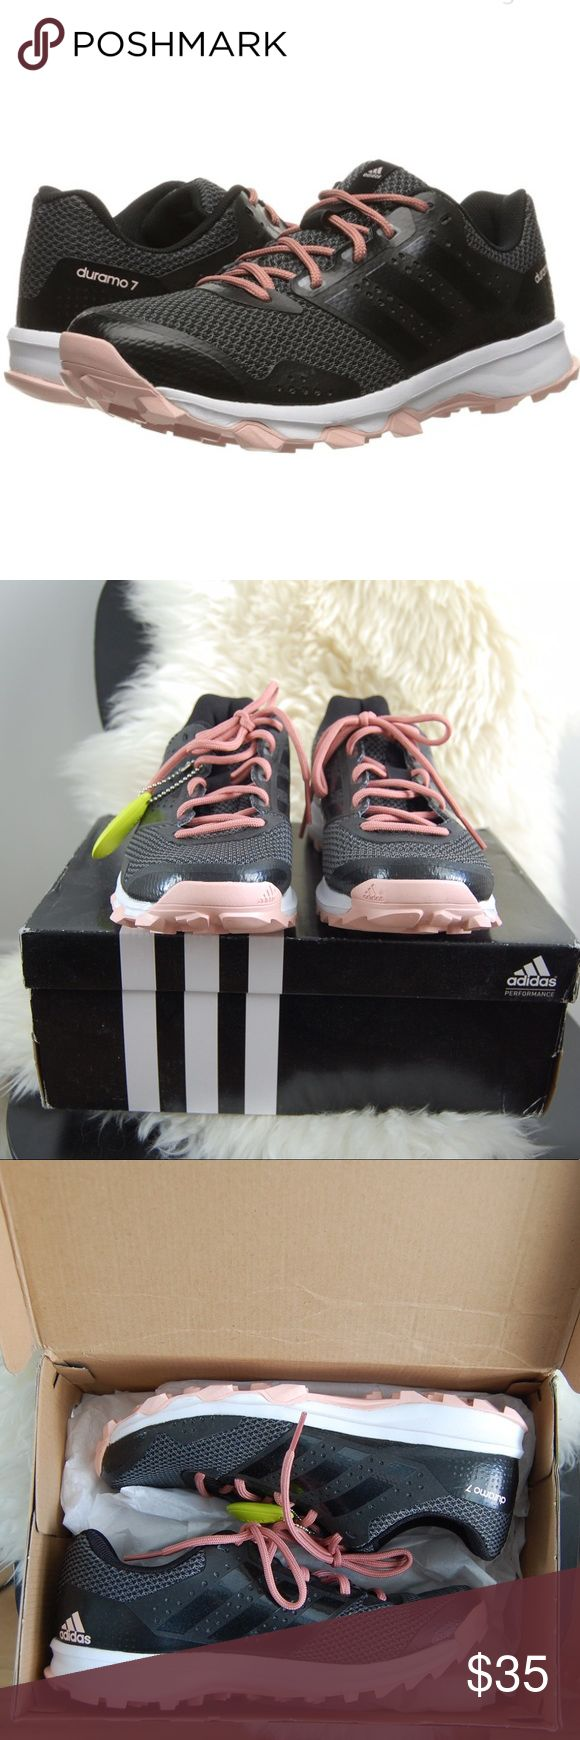 adidas women's Durano trail running shoe - 7.5 NWT Durano trail running shoes in black/light pink. Box is a little beaten up - thanks UPS ;) Adidas Shoes Sneakers